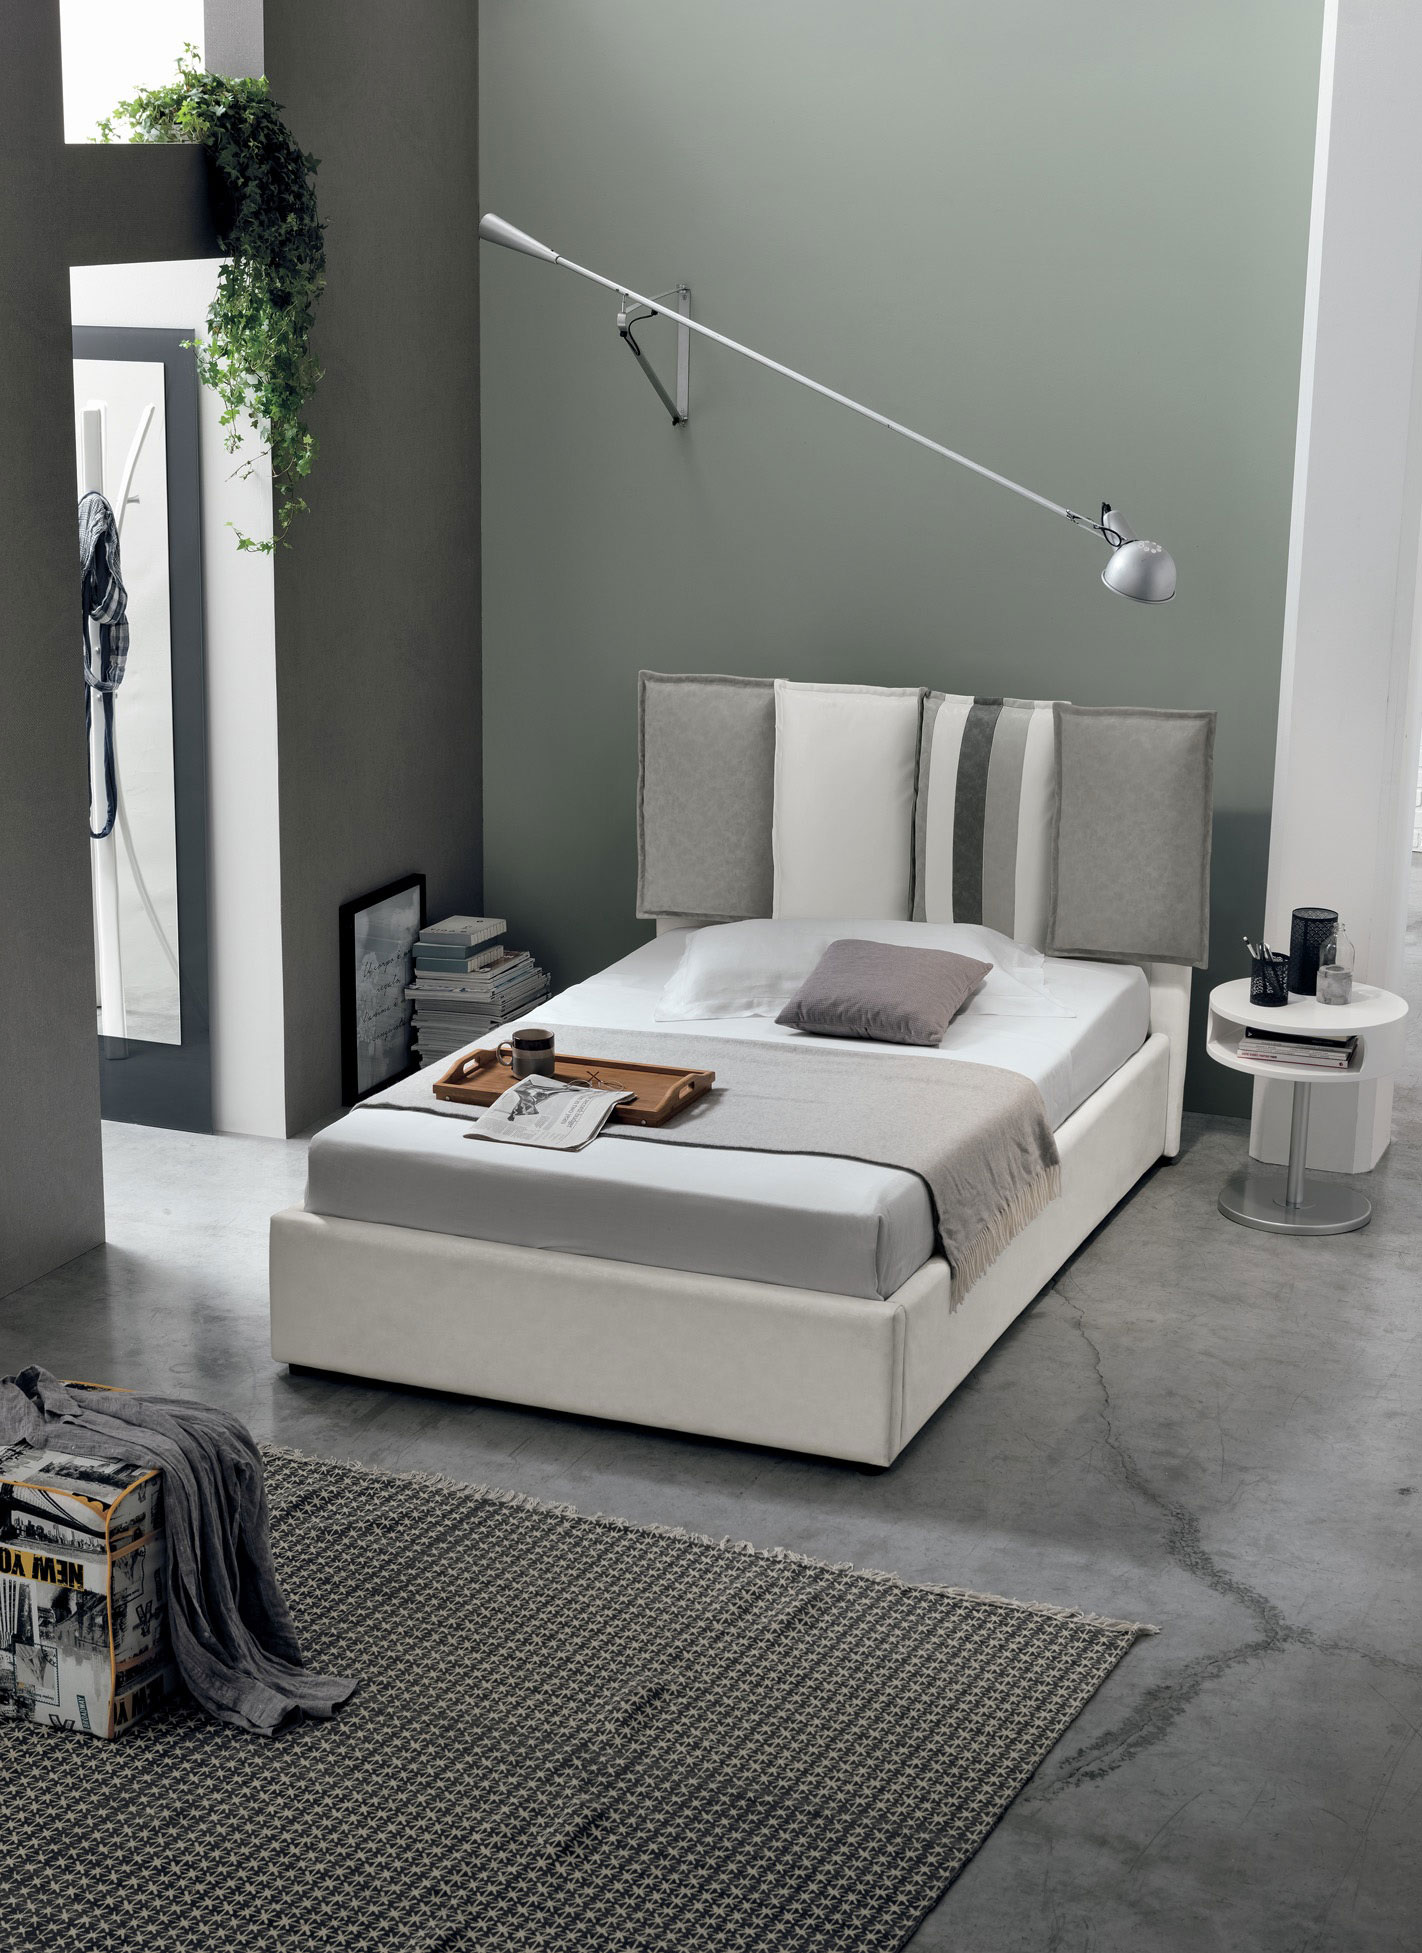 white leather low bed  with cushions at the back, comfy cushions on the headboard, colorful modern bed low with no legs, double bed low in height, xamilo diplo krevati aspro dermatino me maxilaria stin kefalaria,